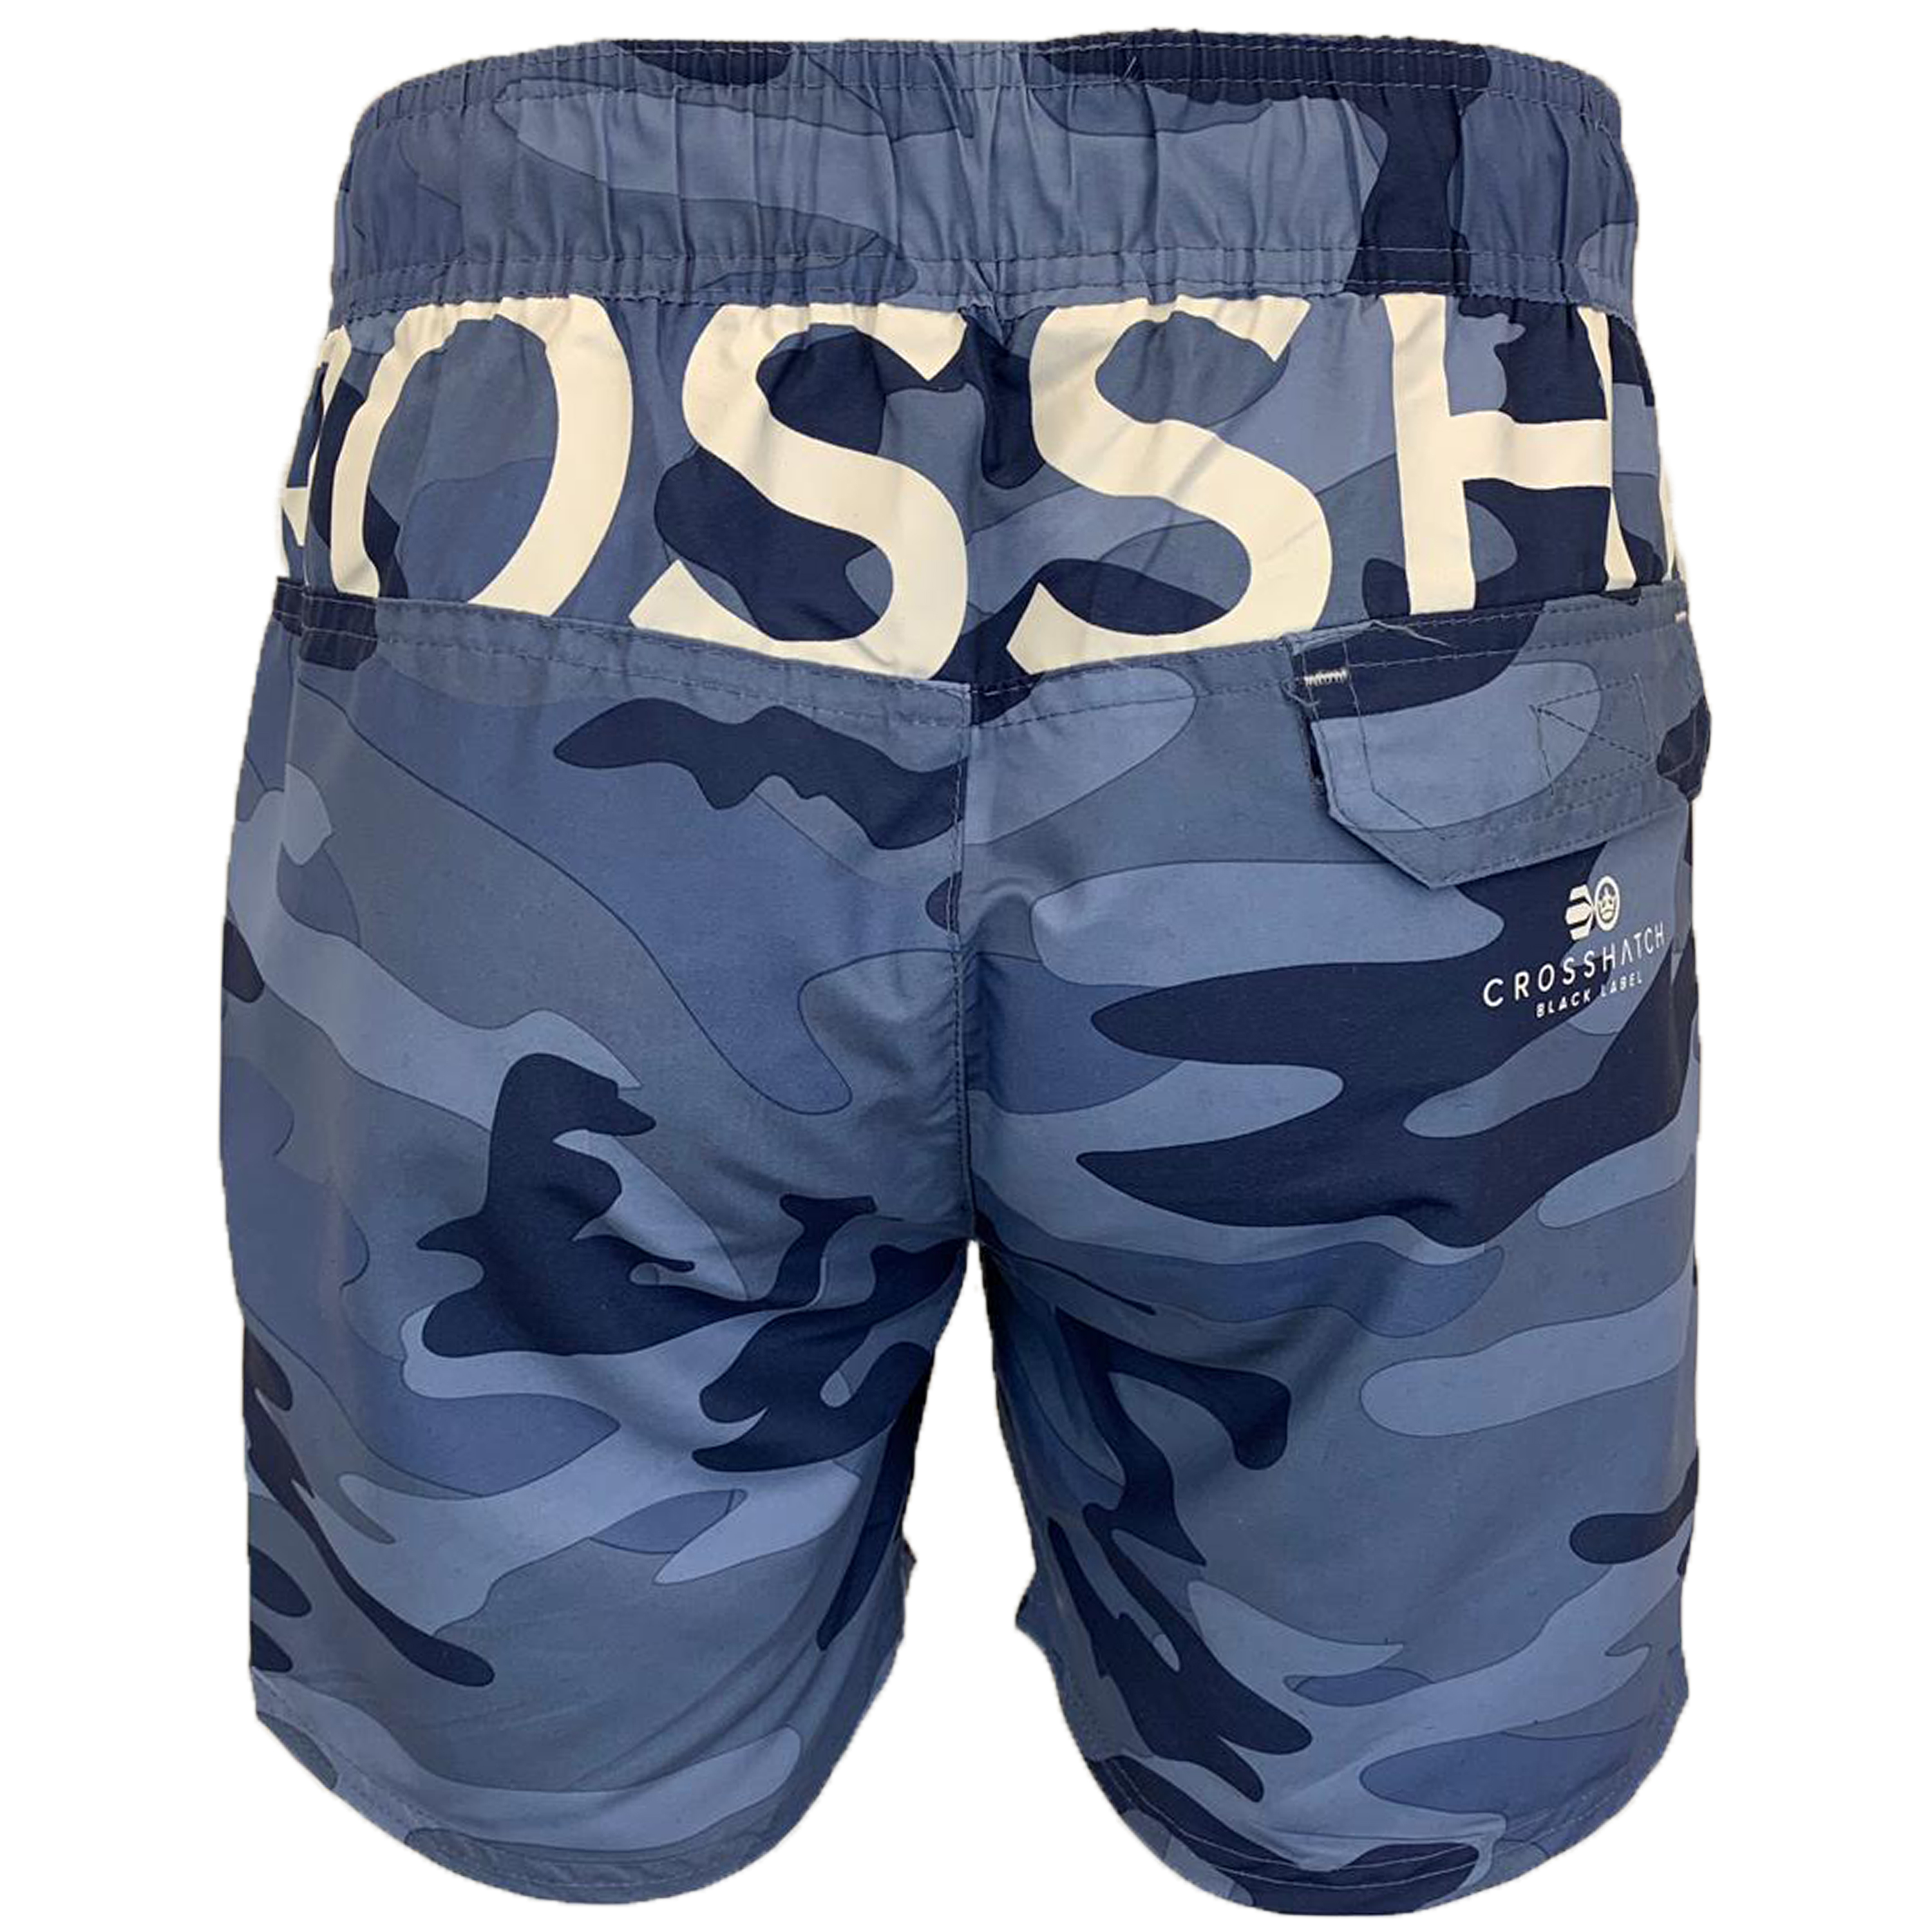 Mens-Camouflage-Swim-Shorts-Crosshatch-Army-Military-Knee-Length-Casual-Summer thumbnail 3